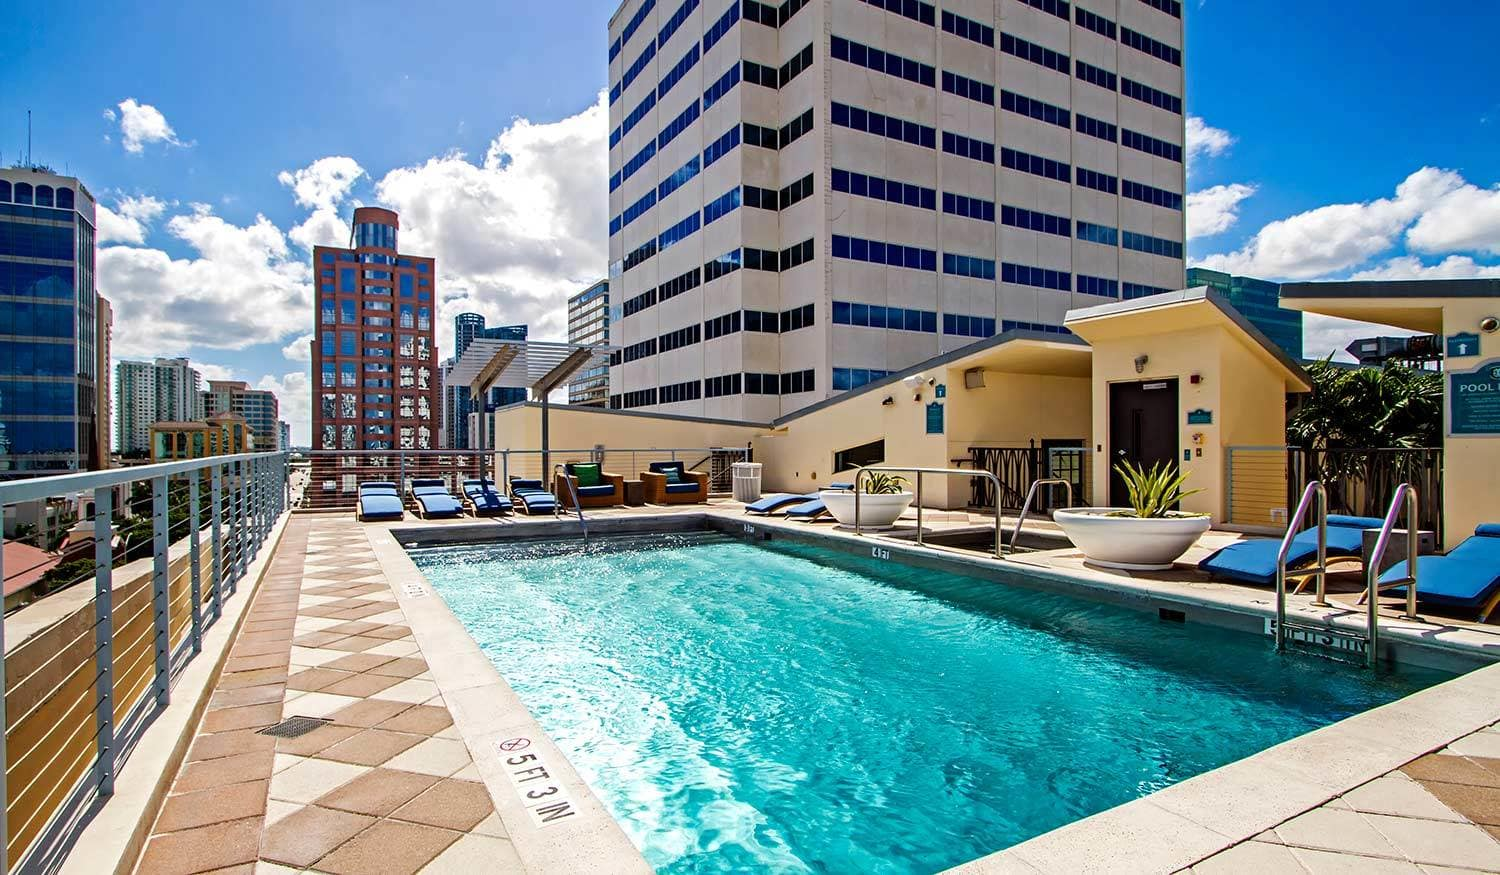 The rooftop swimming pool at The Exchange Lofts is a great place to relax - day and night in Fort Lauderdale, Florida!